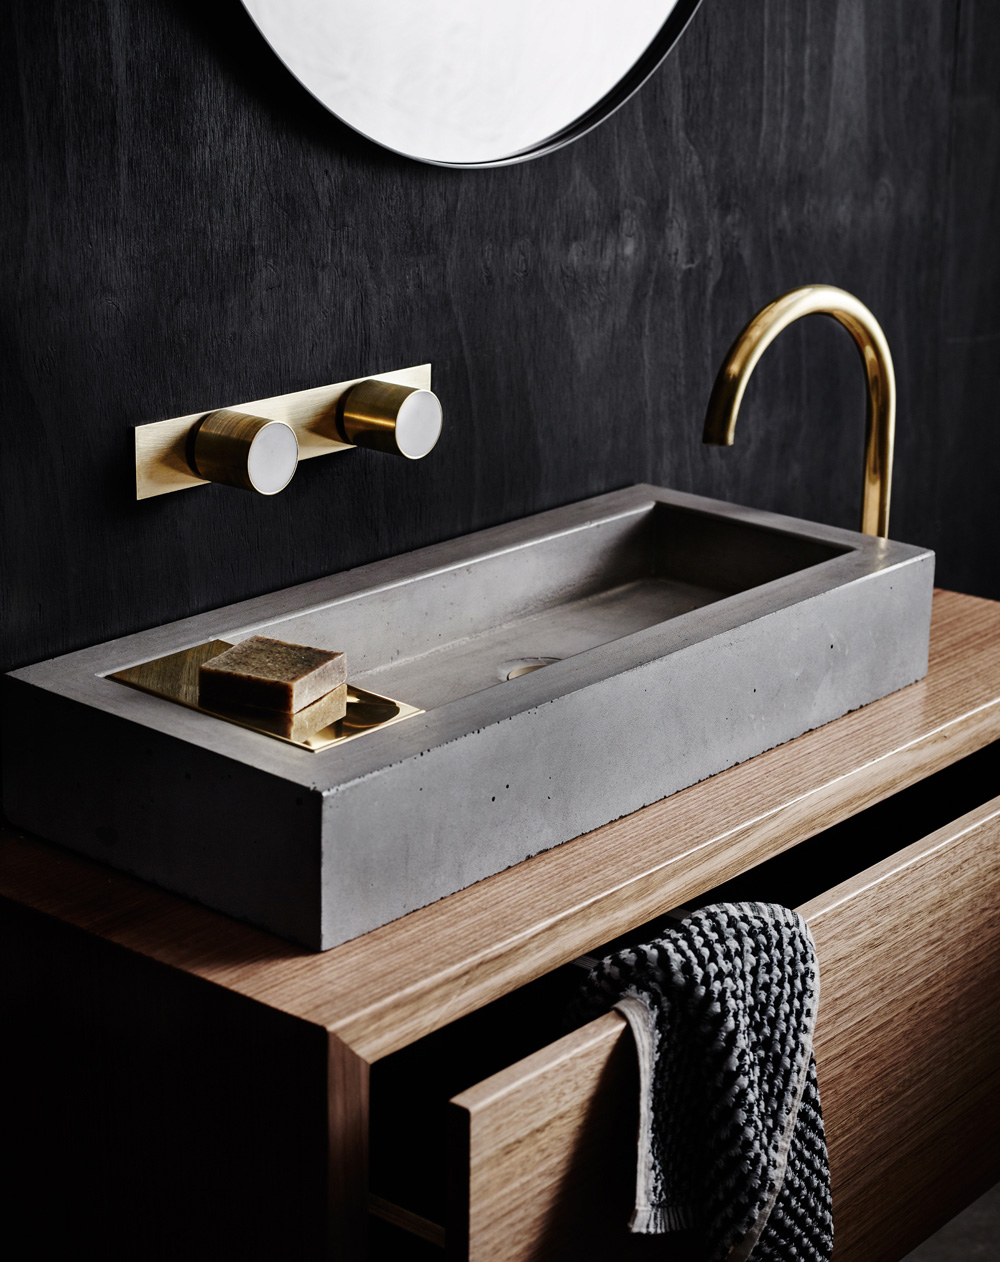 and bathroom accessories maker and designer oliver maclatchy founded